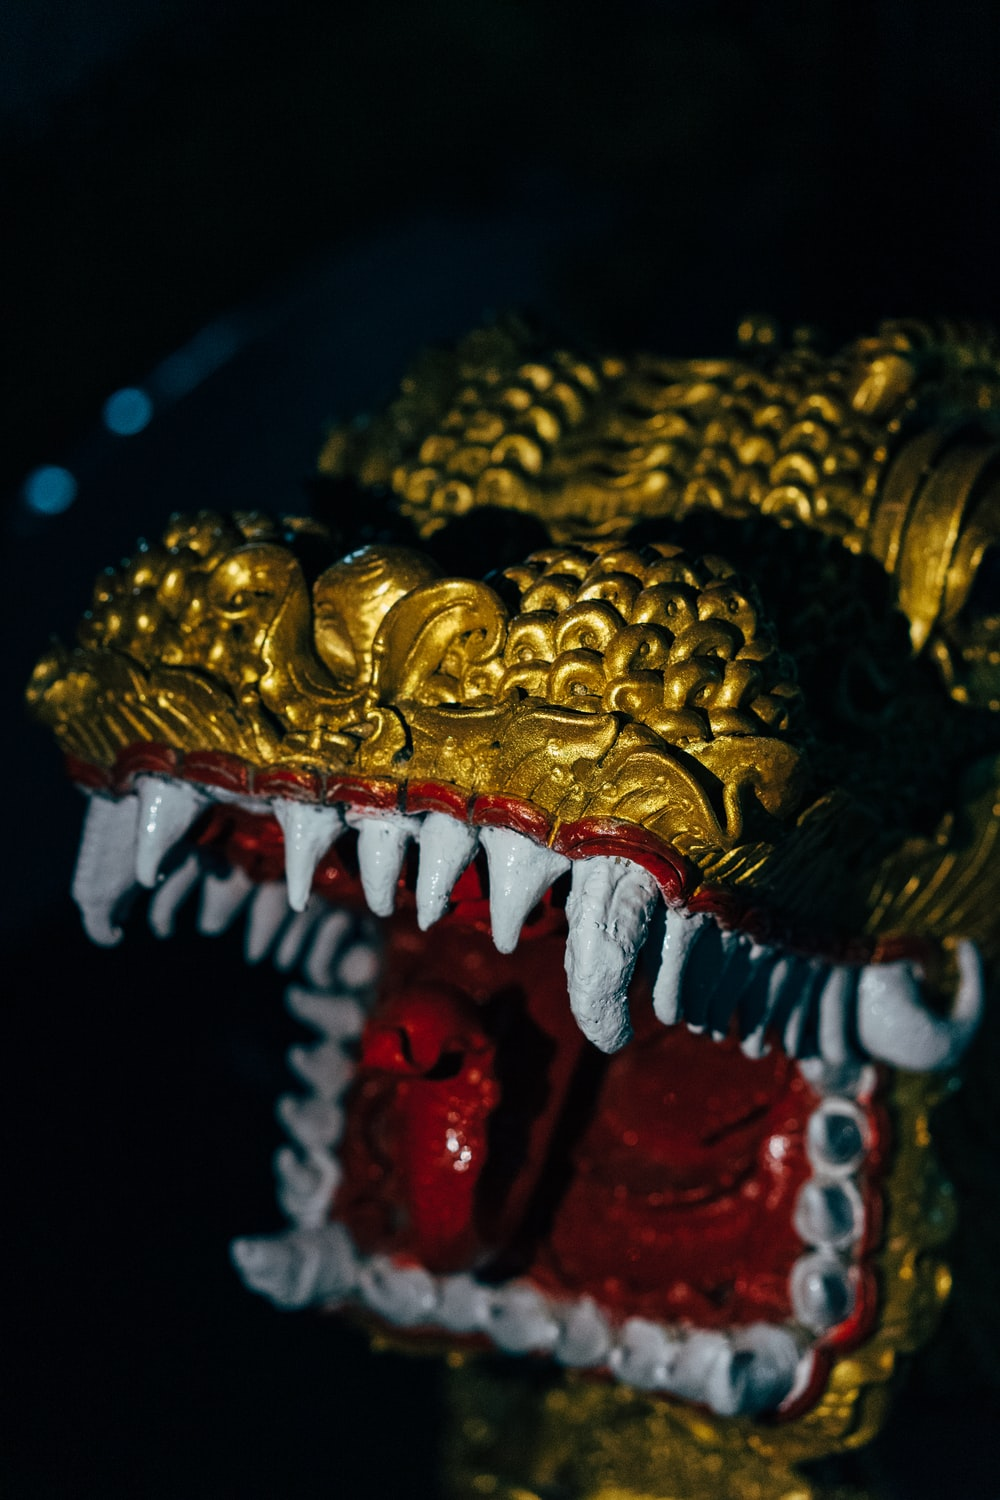 gold and red dragon figurine